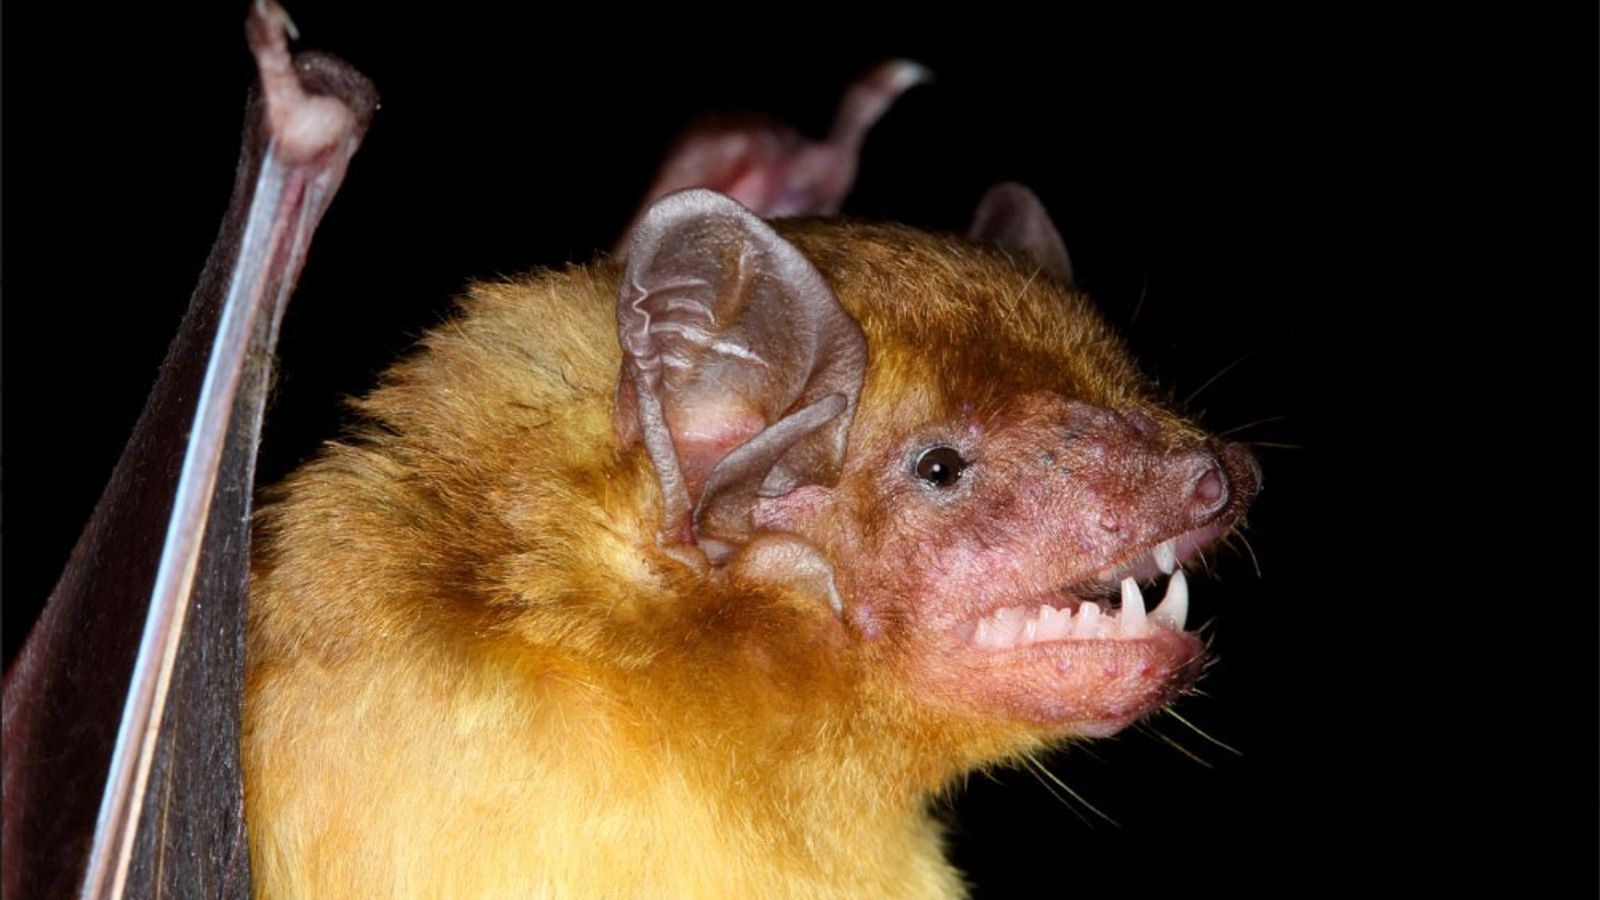 The yellow house bat (pictured) is one of 110 bat species native to Kenya.